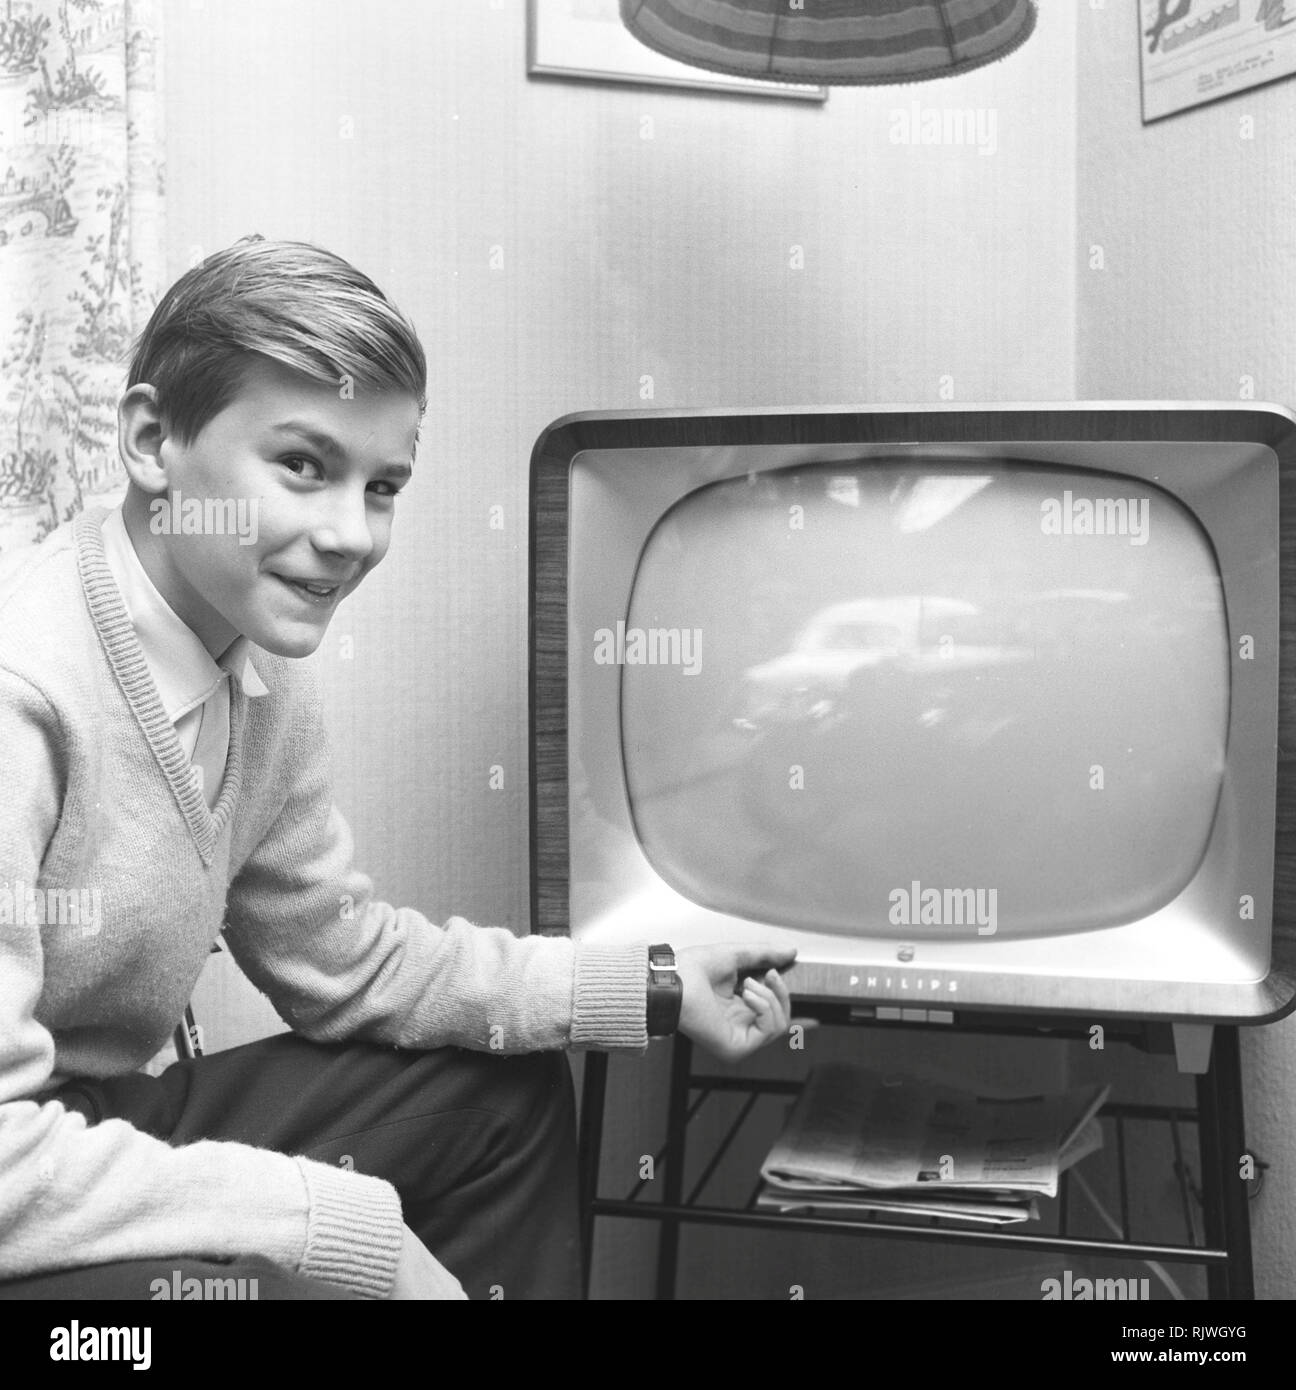 Television in the 1950s. A young man in front of a television set  in January 1959. Sweden - Stock Image